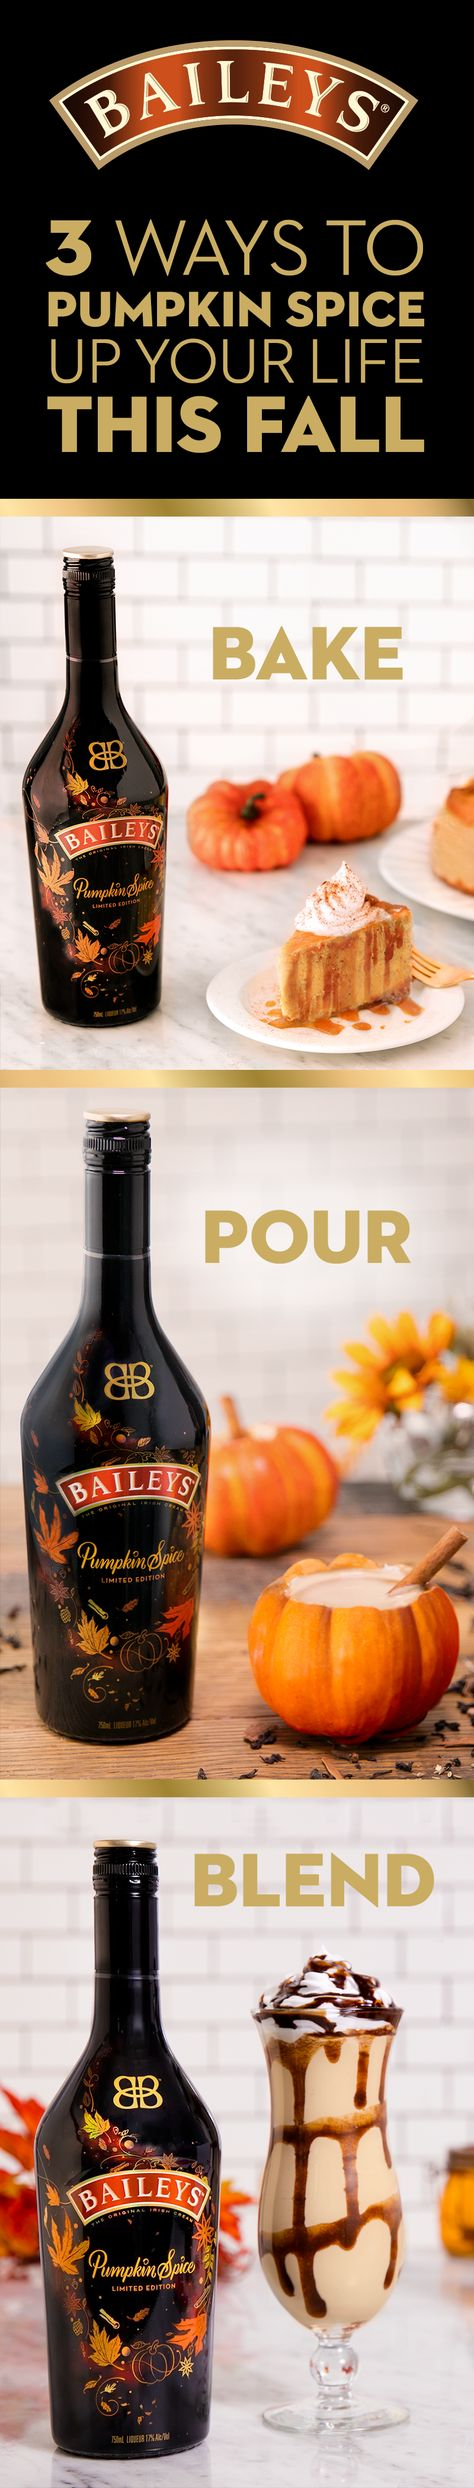 Kickoff the fall with new limited edition Baileys Pumpkin Spice! Whether you're drinking or baking, enjoy  these 3 recipes at Thanksgiving dinner, a weekend brunch, or even  a Halloween movie night. Cheesecake Add 1 cup of Baileys Pumpkin Spice and 12 oz of pumpkin puree to your cheesecake mixture. Spoon into prepared pie crust, bake, let cool, then refrigerate. Mudslide Use Baileys Pumpkin Spice for our recipe on Baileys.com. Latte Pour 2 oz Baileys Pumpkin Spice into your coffee or chai…